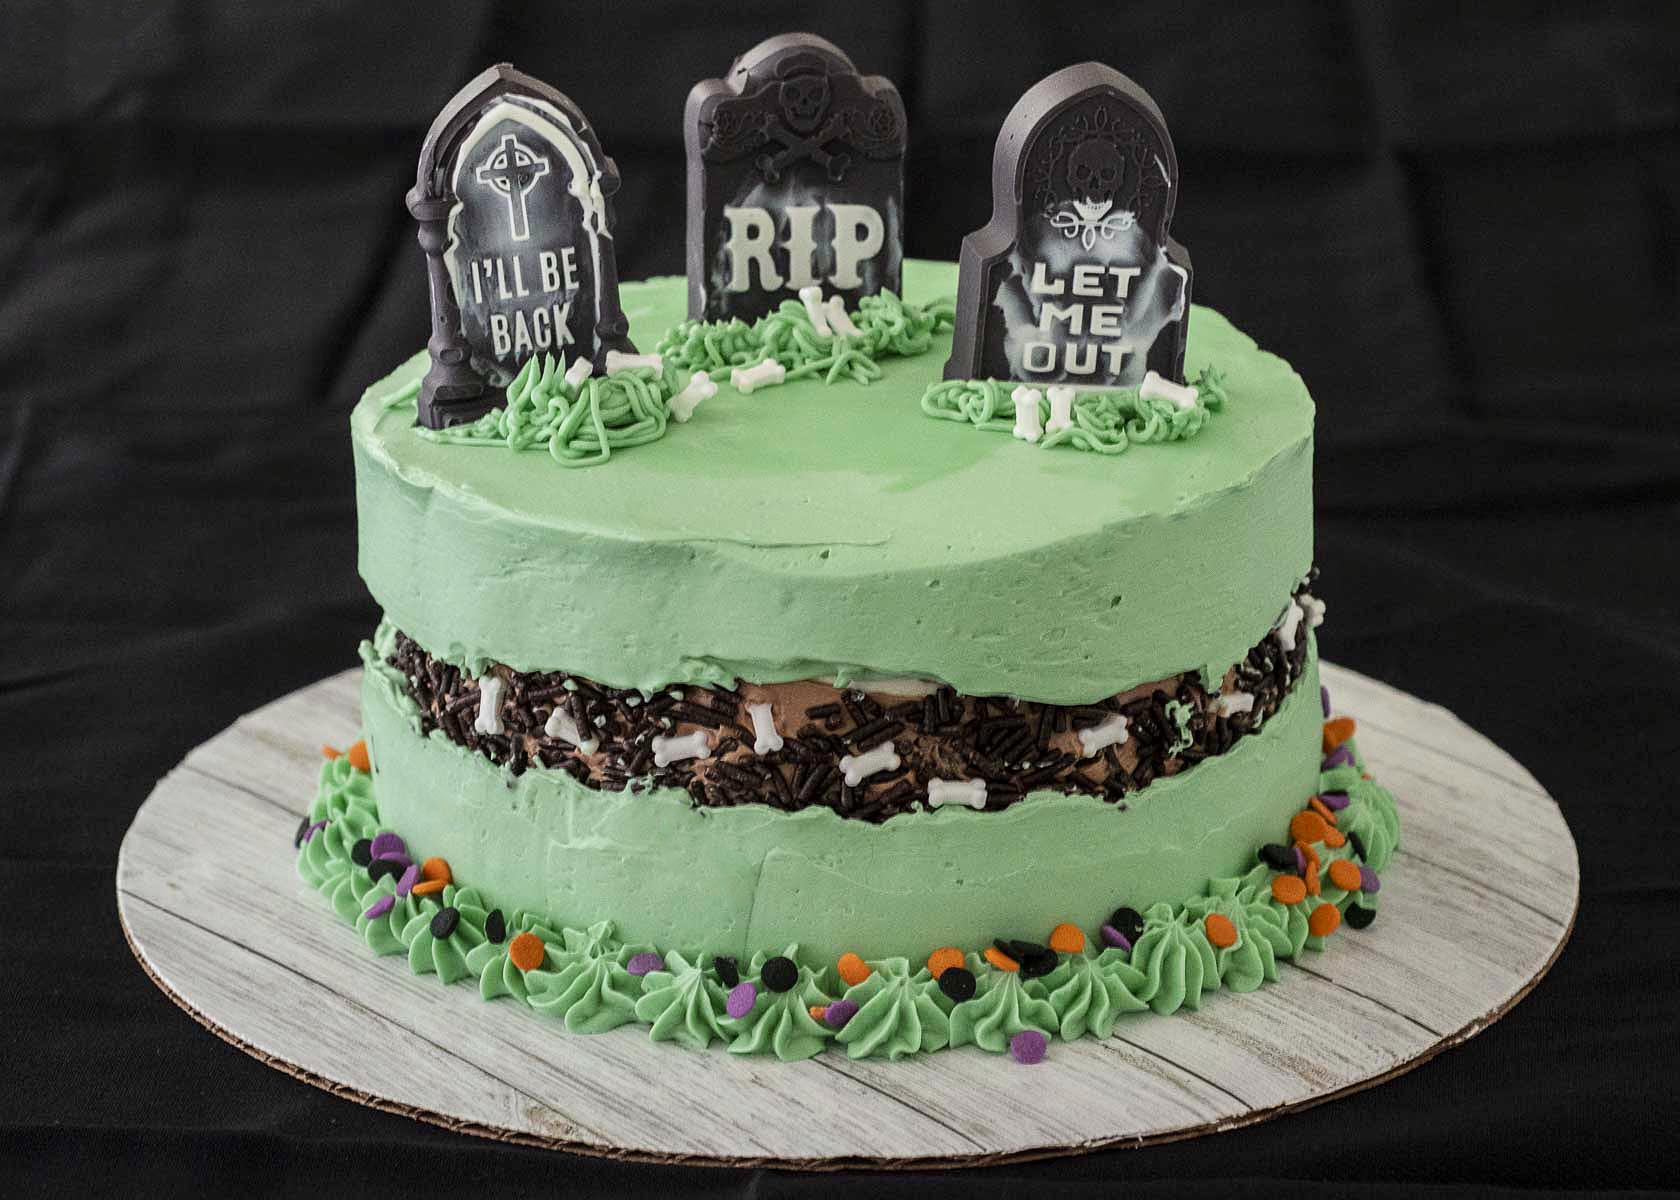 A fully decorated graveyard fault line cake on a black tablecloth.